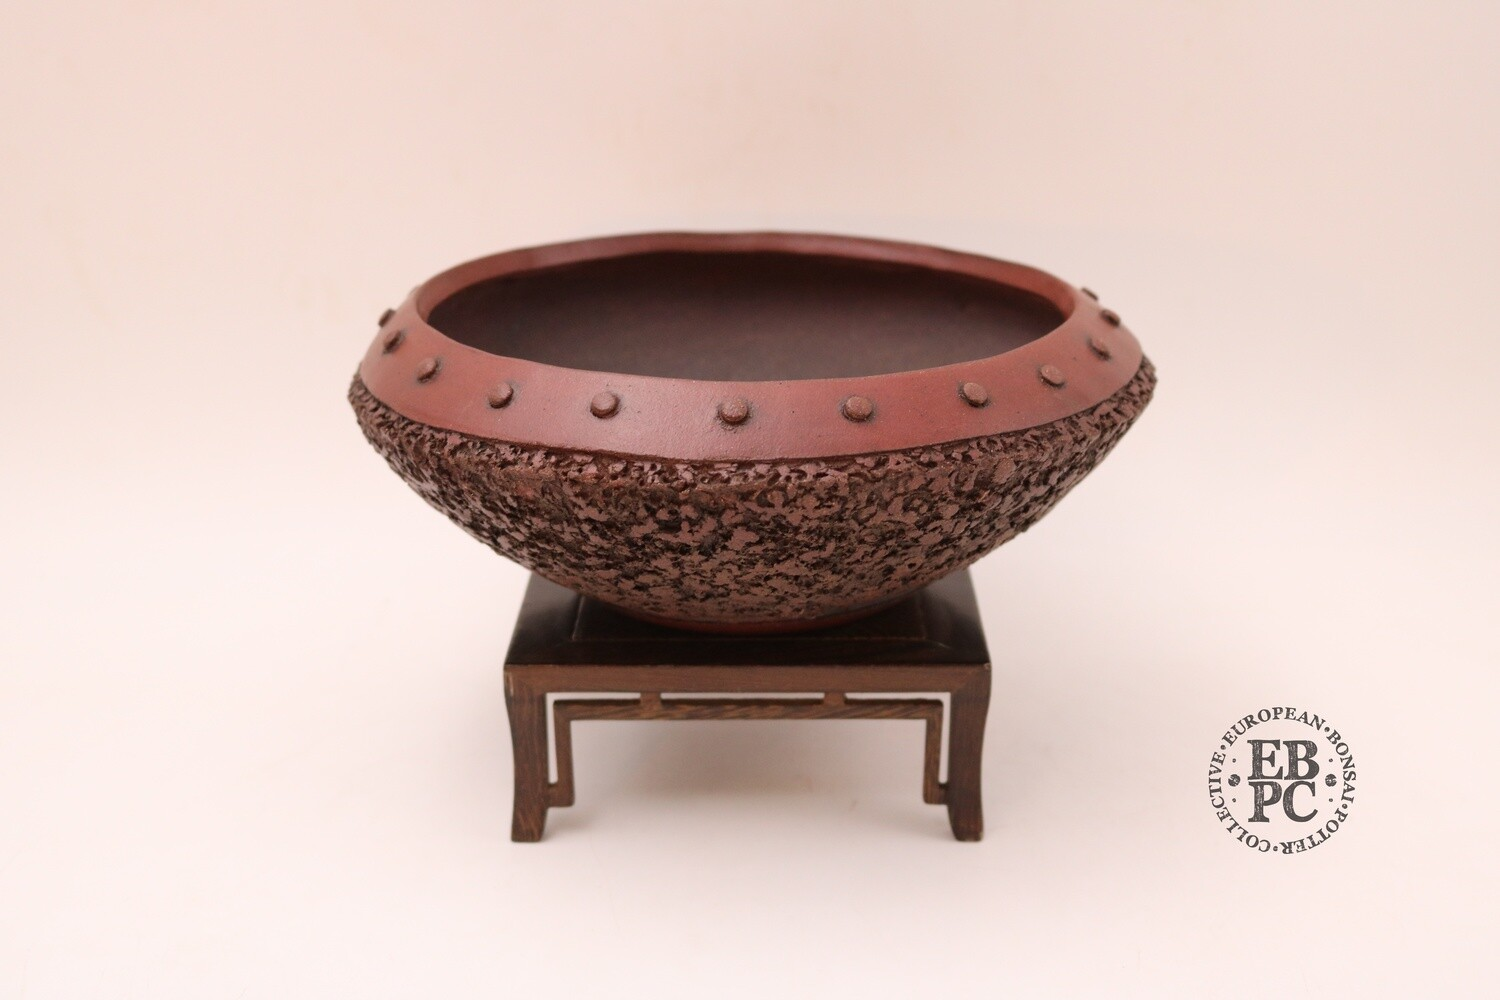 M. J. G. Ceramica - 22cm; Unglazed; Reddish-Brown Clay; Round; Textured; Rivets; Drum / Nanban style; Maria Jose Gonzalez